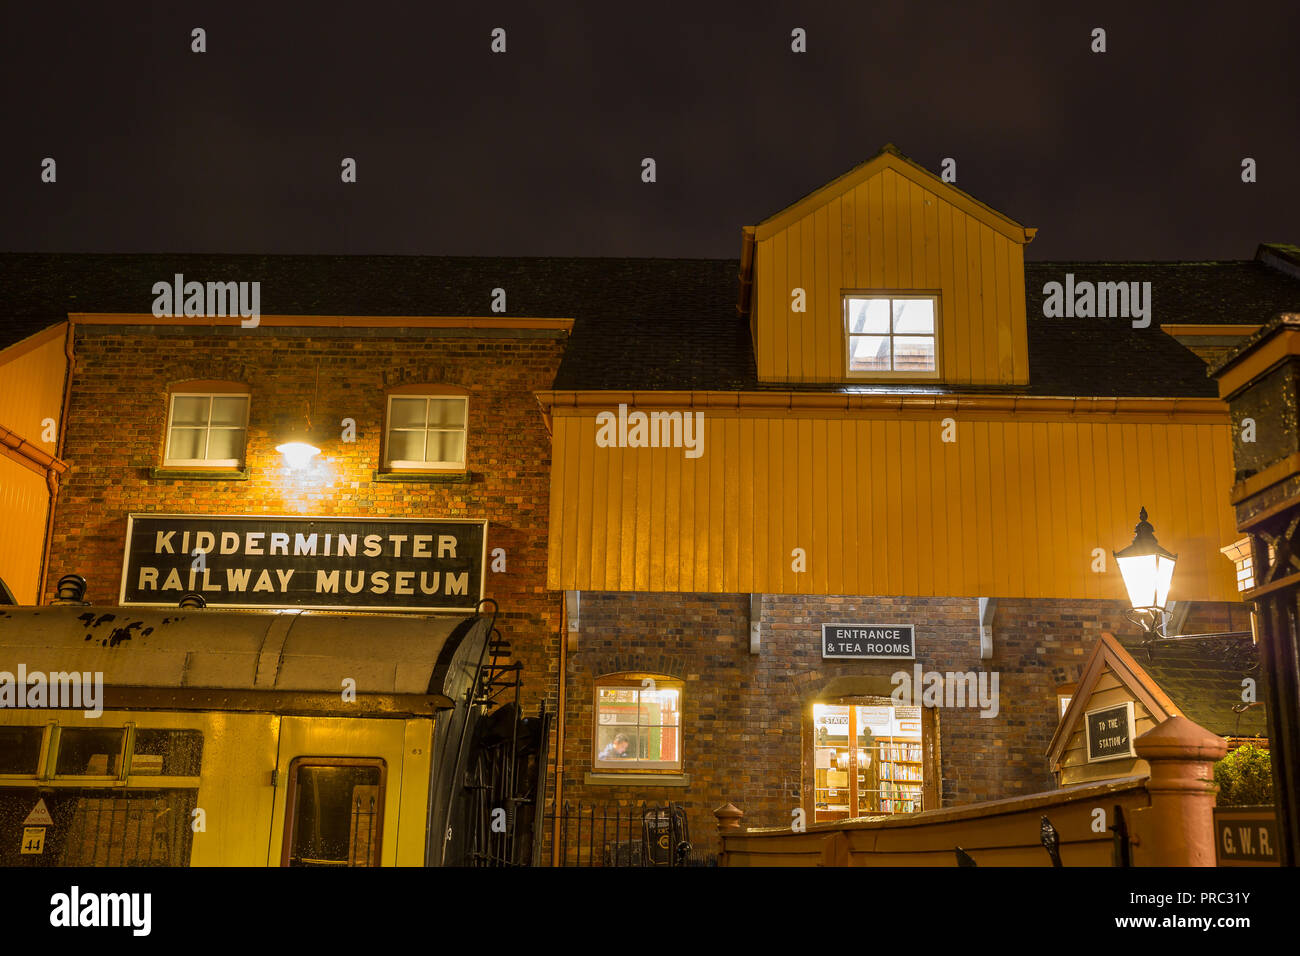 Severn Vlley Railway's Kidderminster station at night. Landscape shot showing signage and entrance to the Kidderminster Railway Museum. - Stock Image